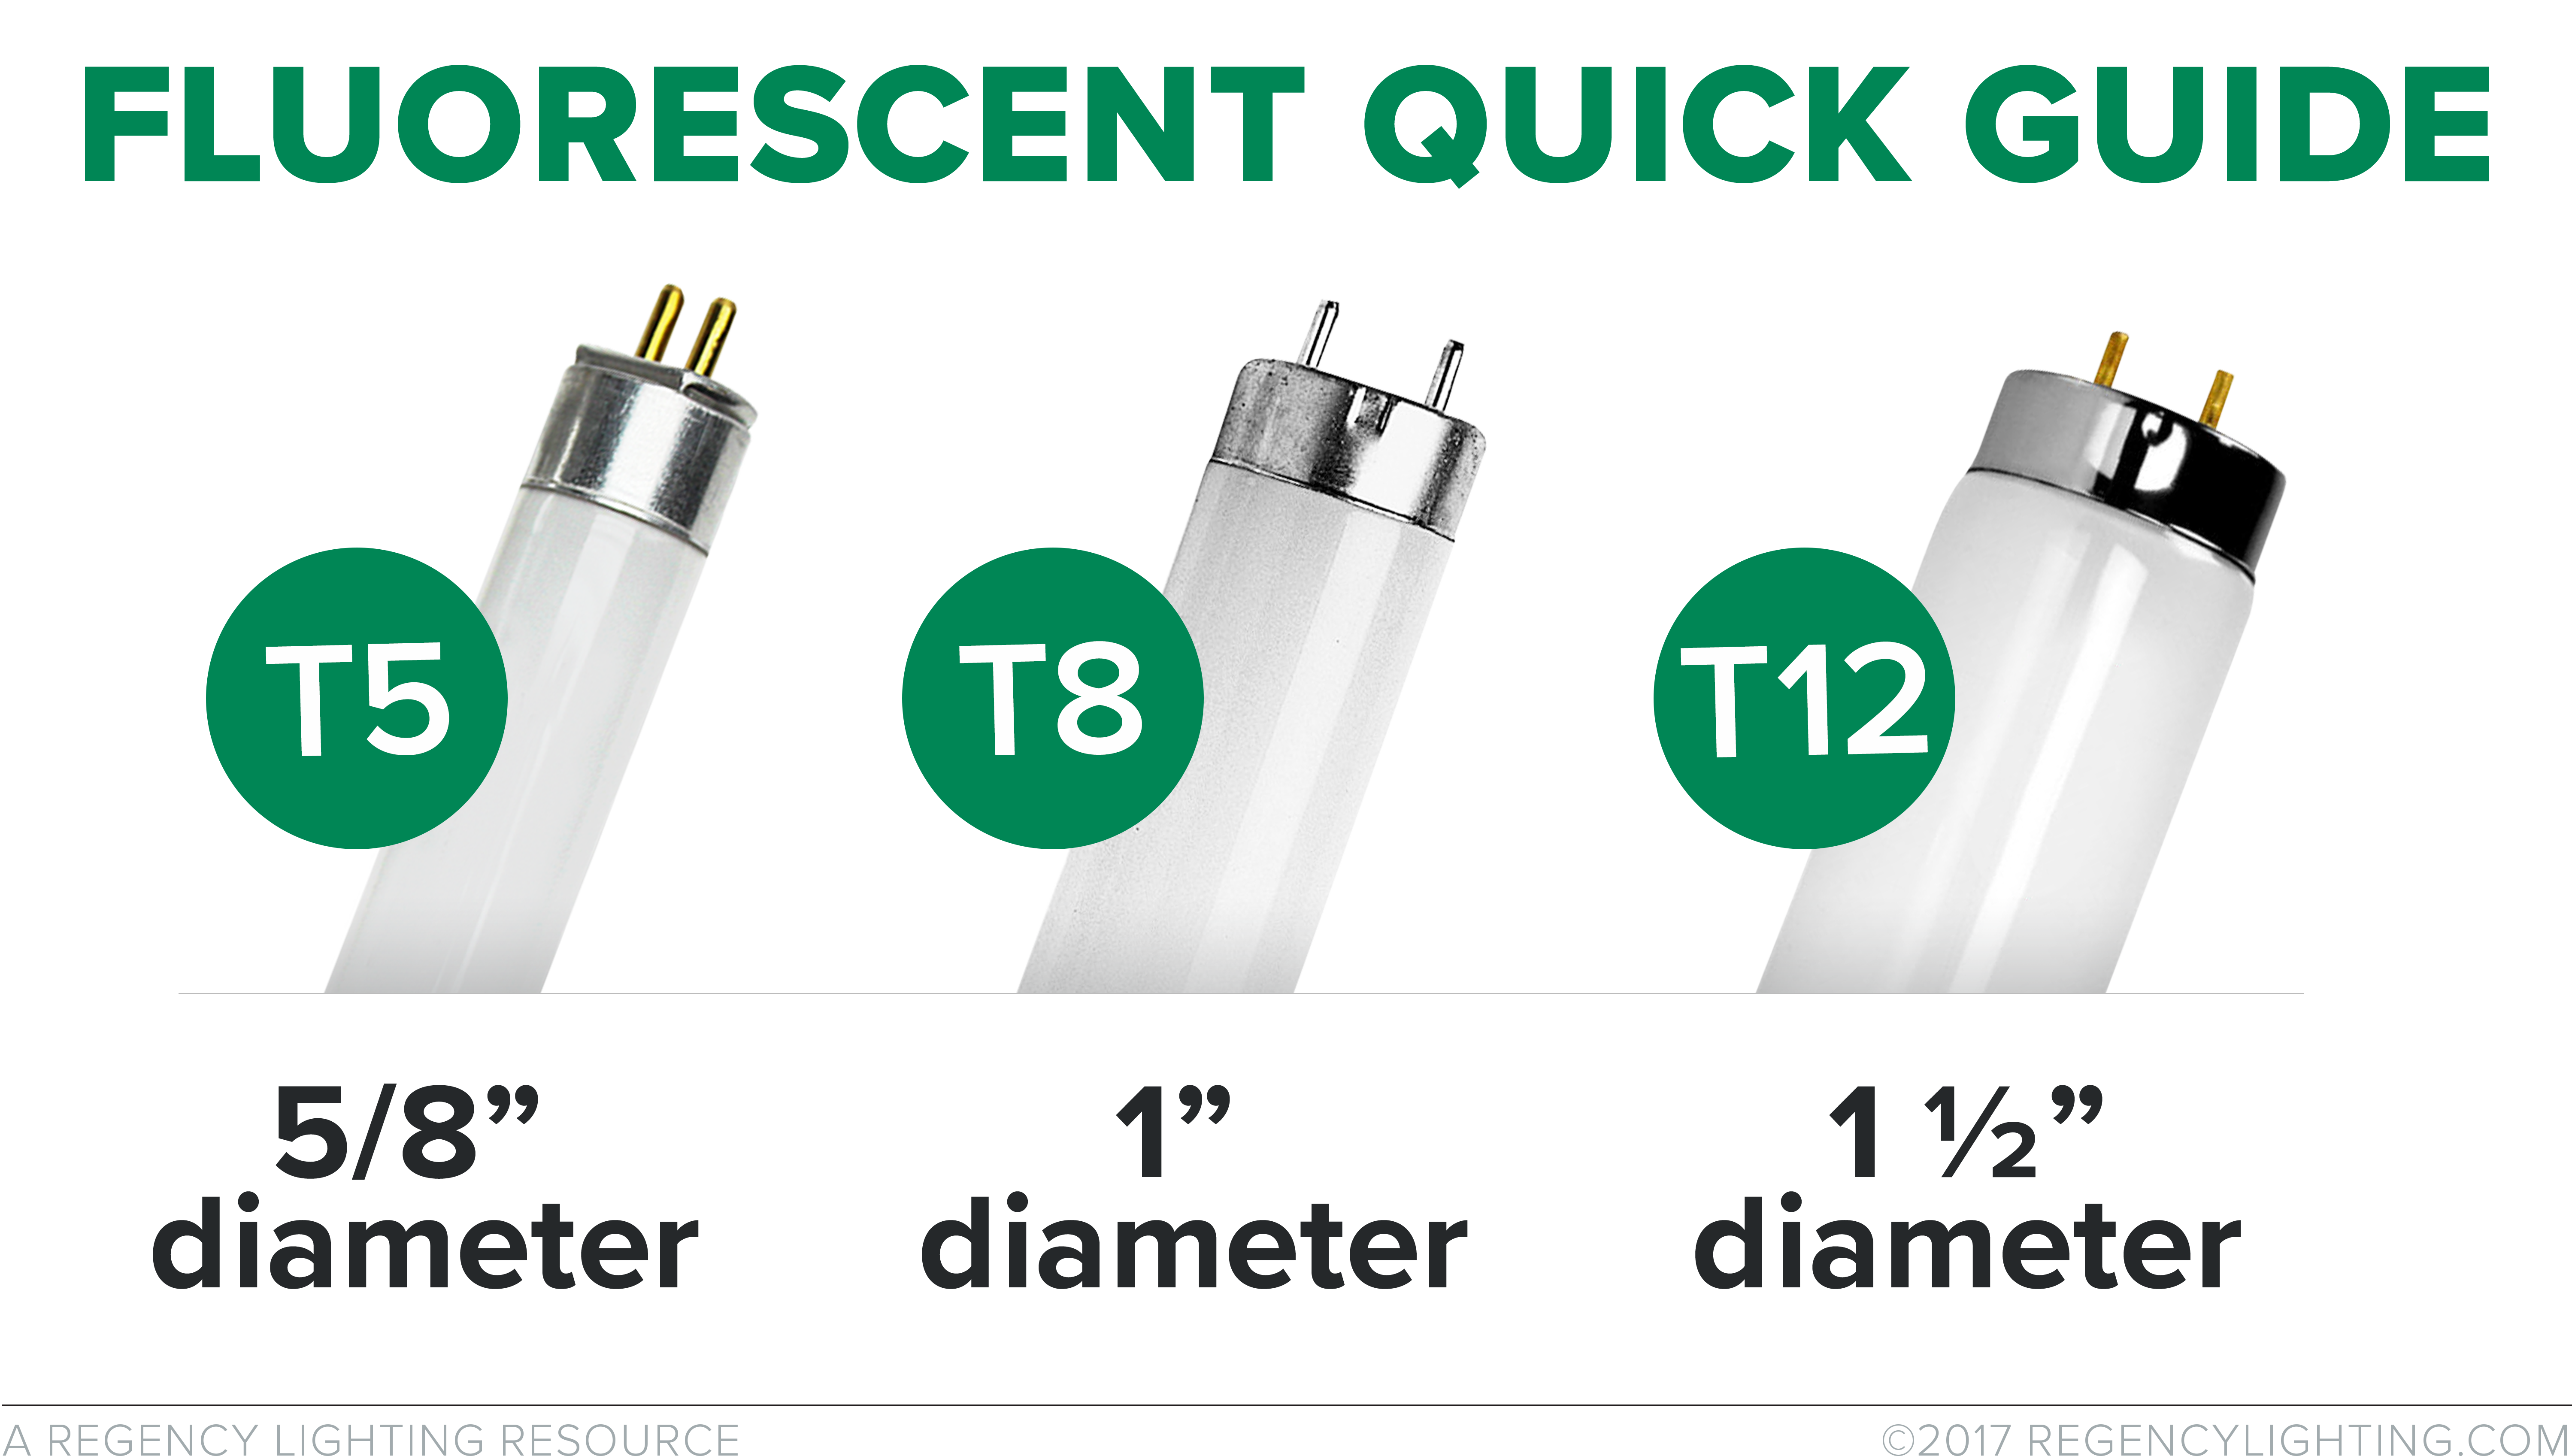 Fluorescent_Bulb_Quick_Guide_FINAL?t=1512511005527&width=550&name=Fluorescent_Bulb_Quick_Guide_FINAL a plug and play led replacement for t12s? yep pros and cons explored ge-240-rs-mv-n wiring diagram at bakdesigns.co